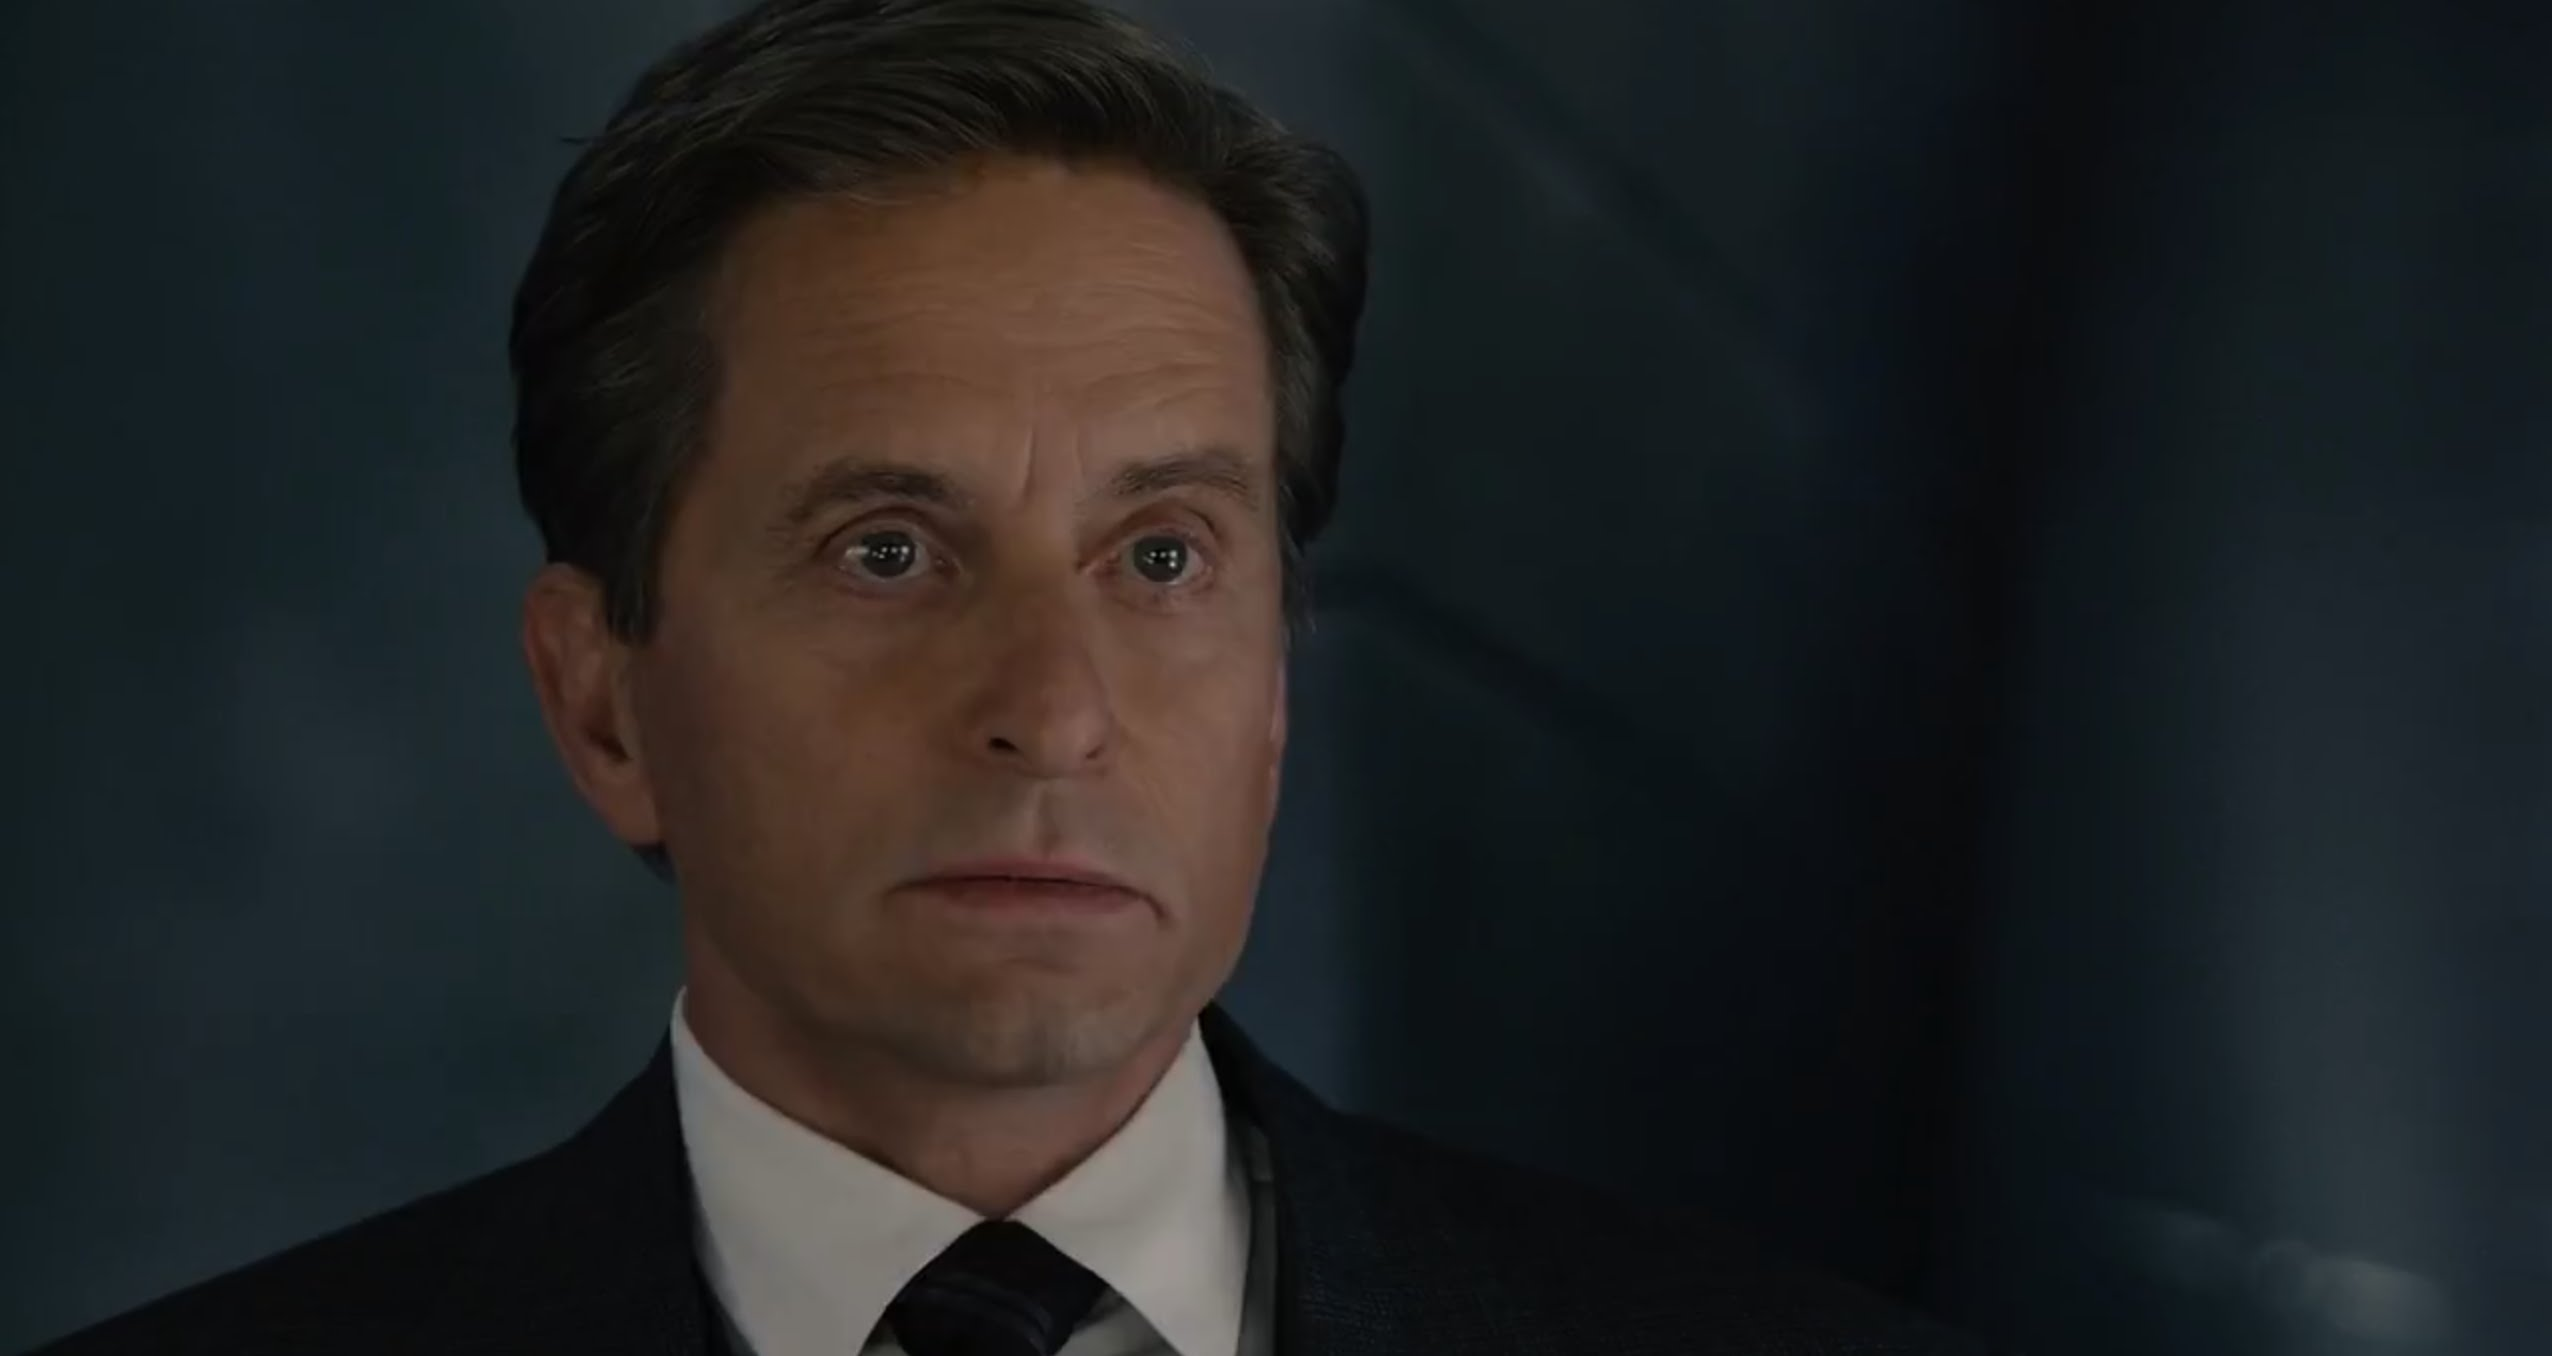 ant man young hank pym